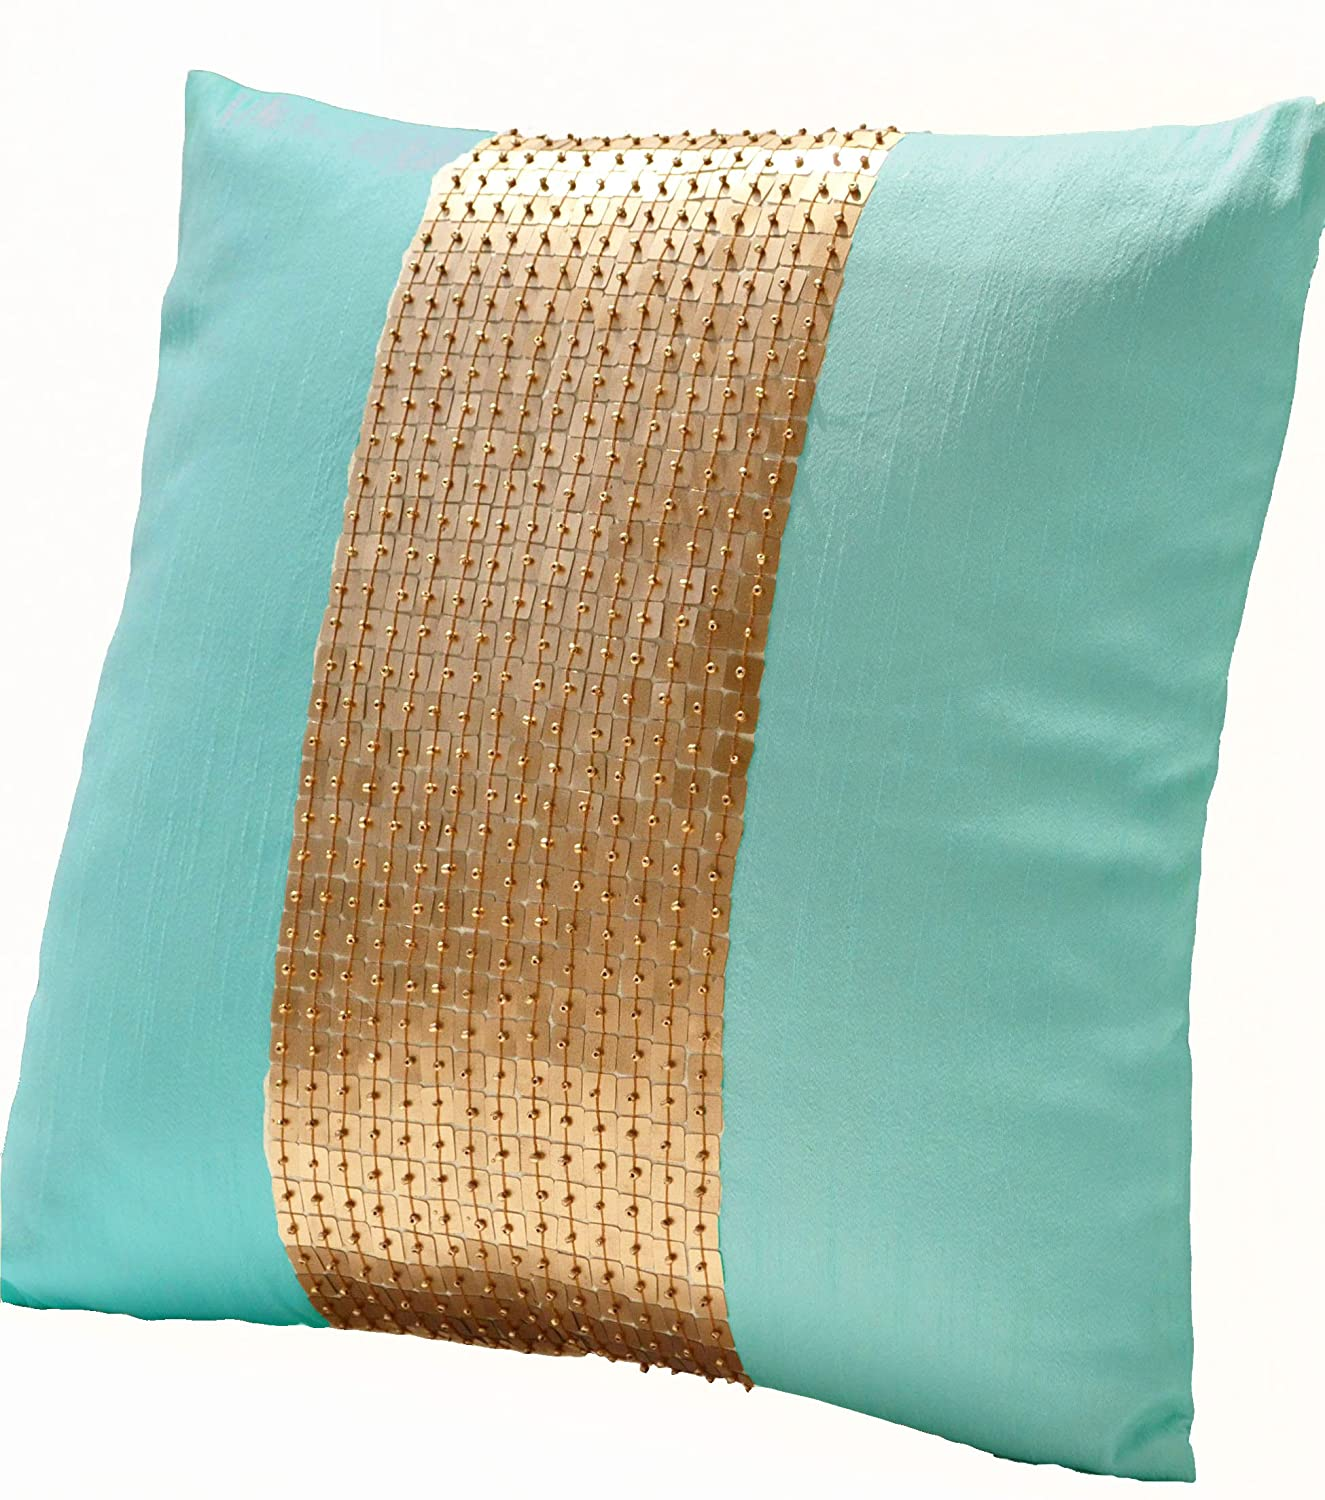 Amazon.com: Amore Beaute Handmade Teal pillow covers- Teal gold ...